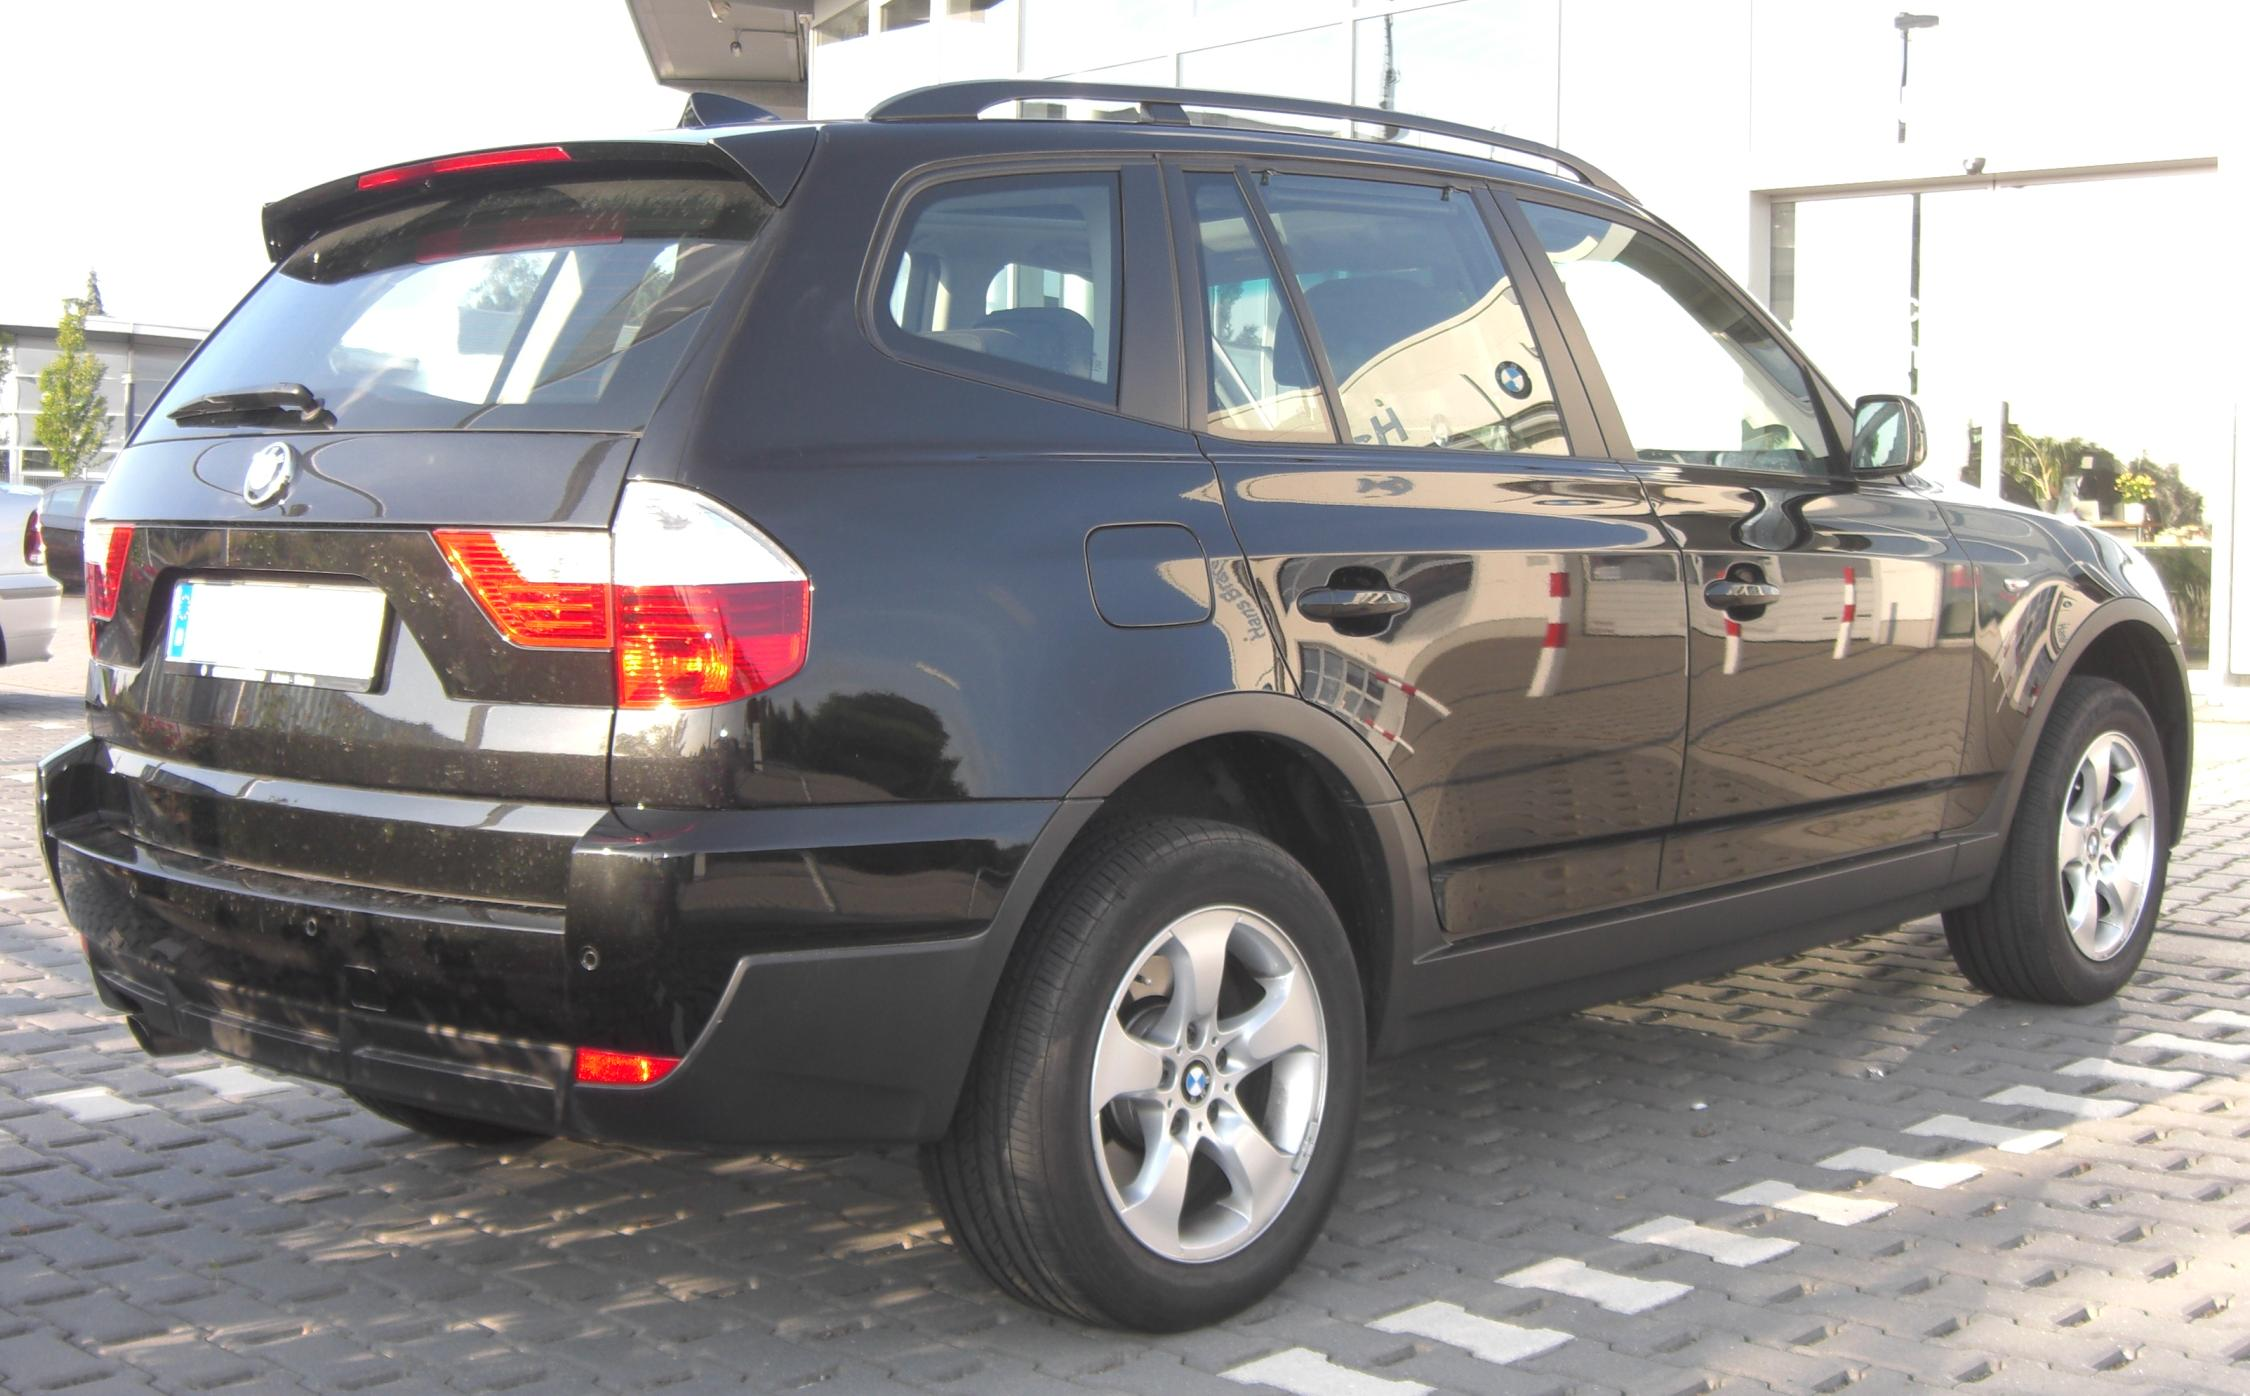 file bmw x3 facelift wikimedia commons. Black Bedroom Furniture Sets. Home Design Ideas